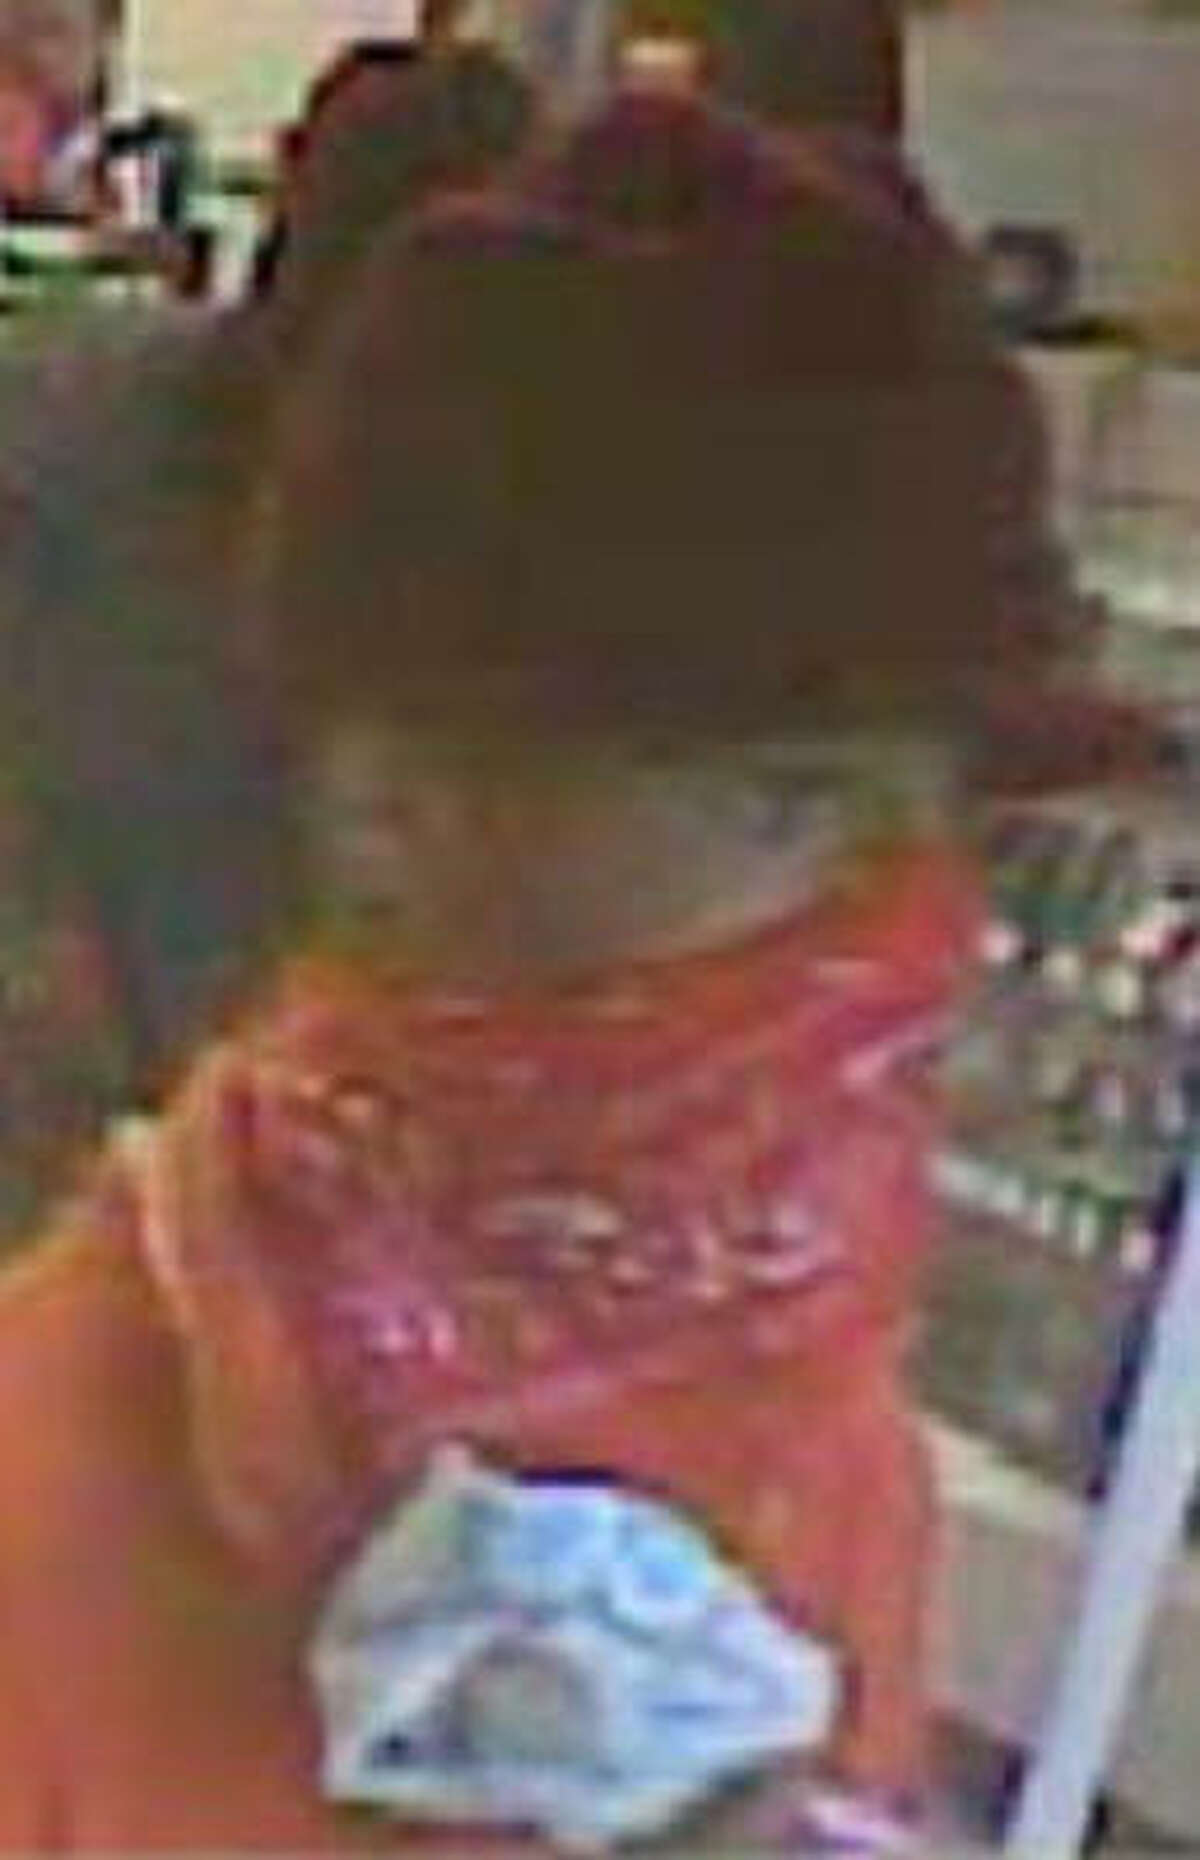 This person and two others are suspected of robbing four Houston-area pawn shops since July 31.